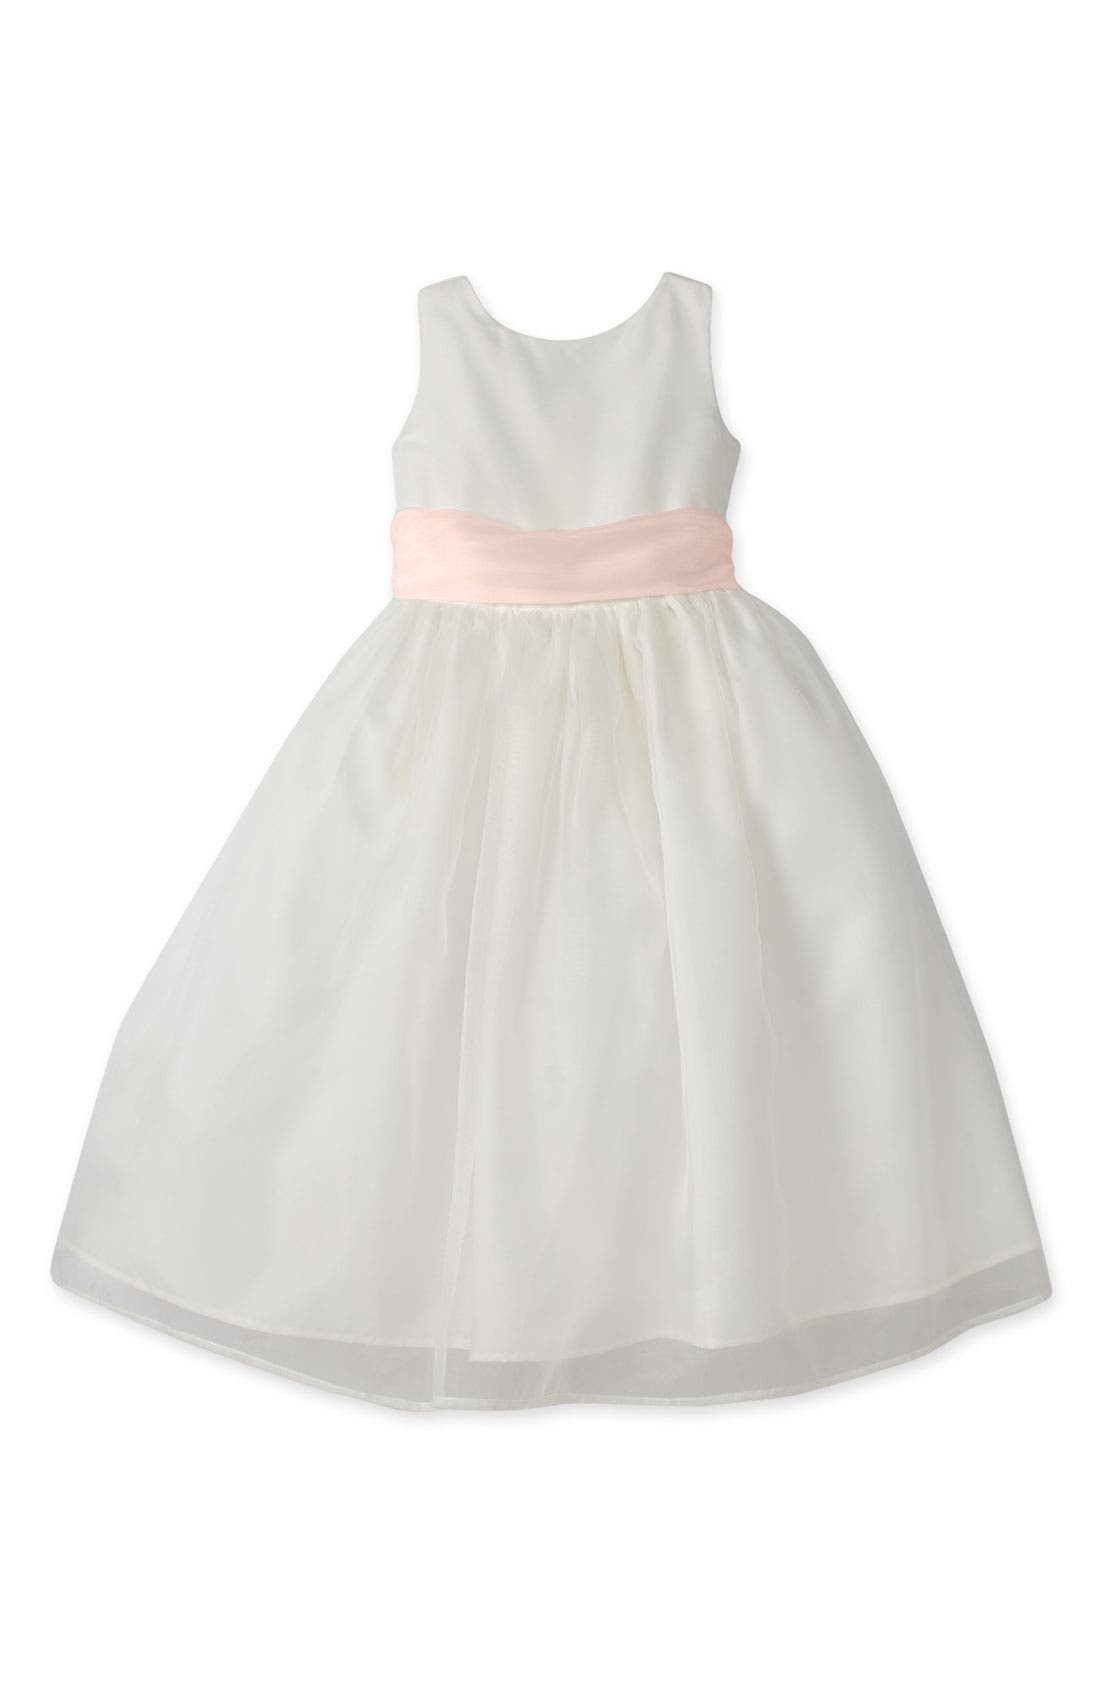 Main Image - Us Angels Sleeveless Organza Dress (Toddler Girls, Little Girls & Big Girls)